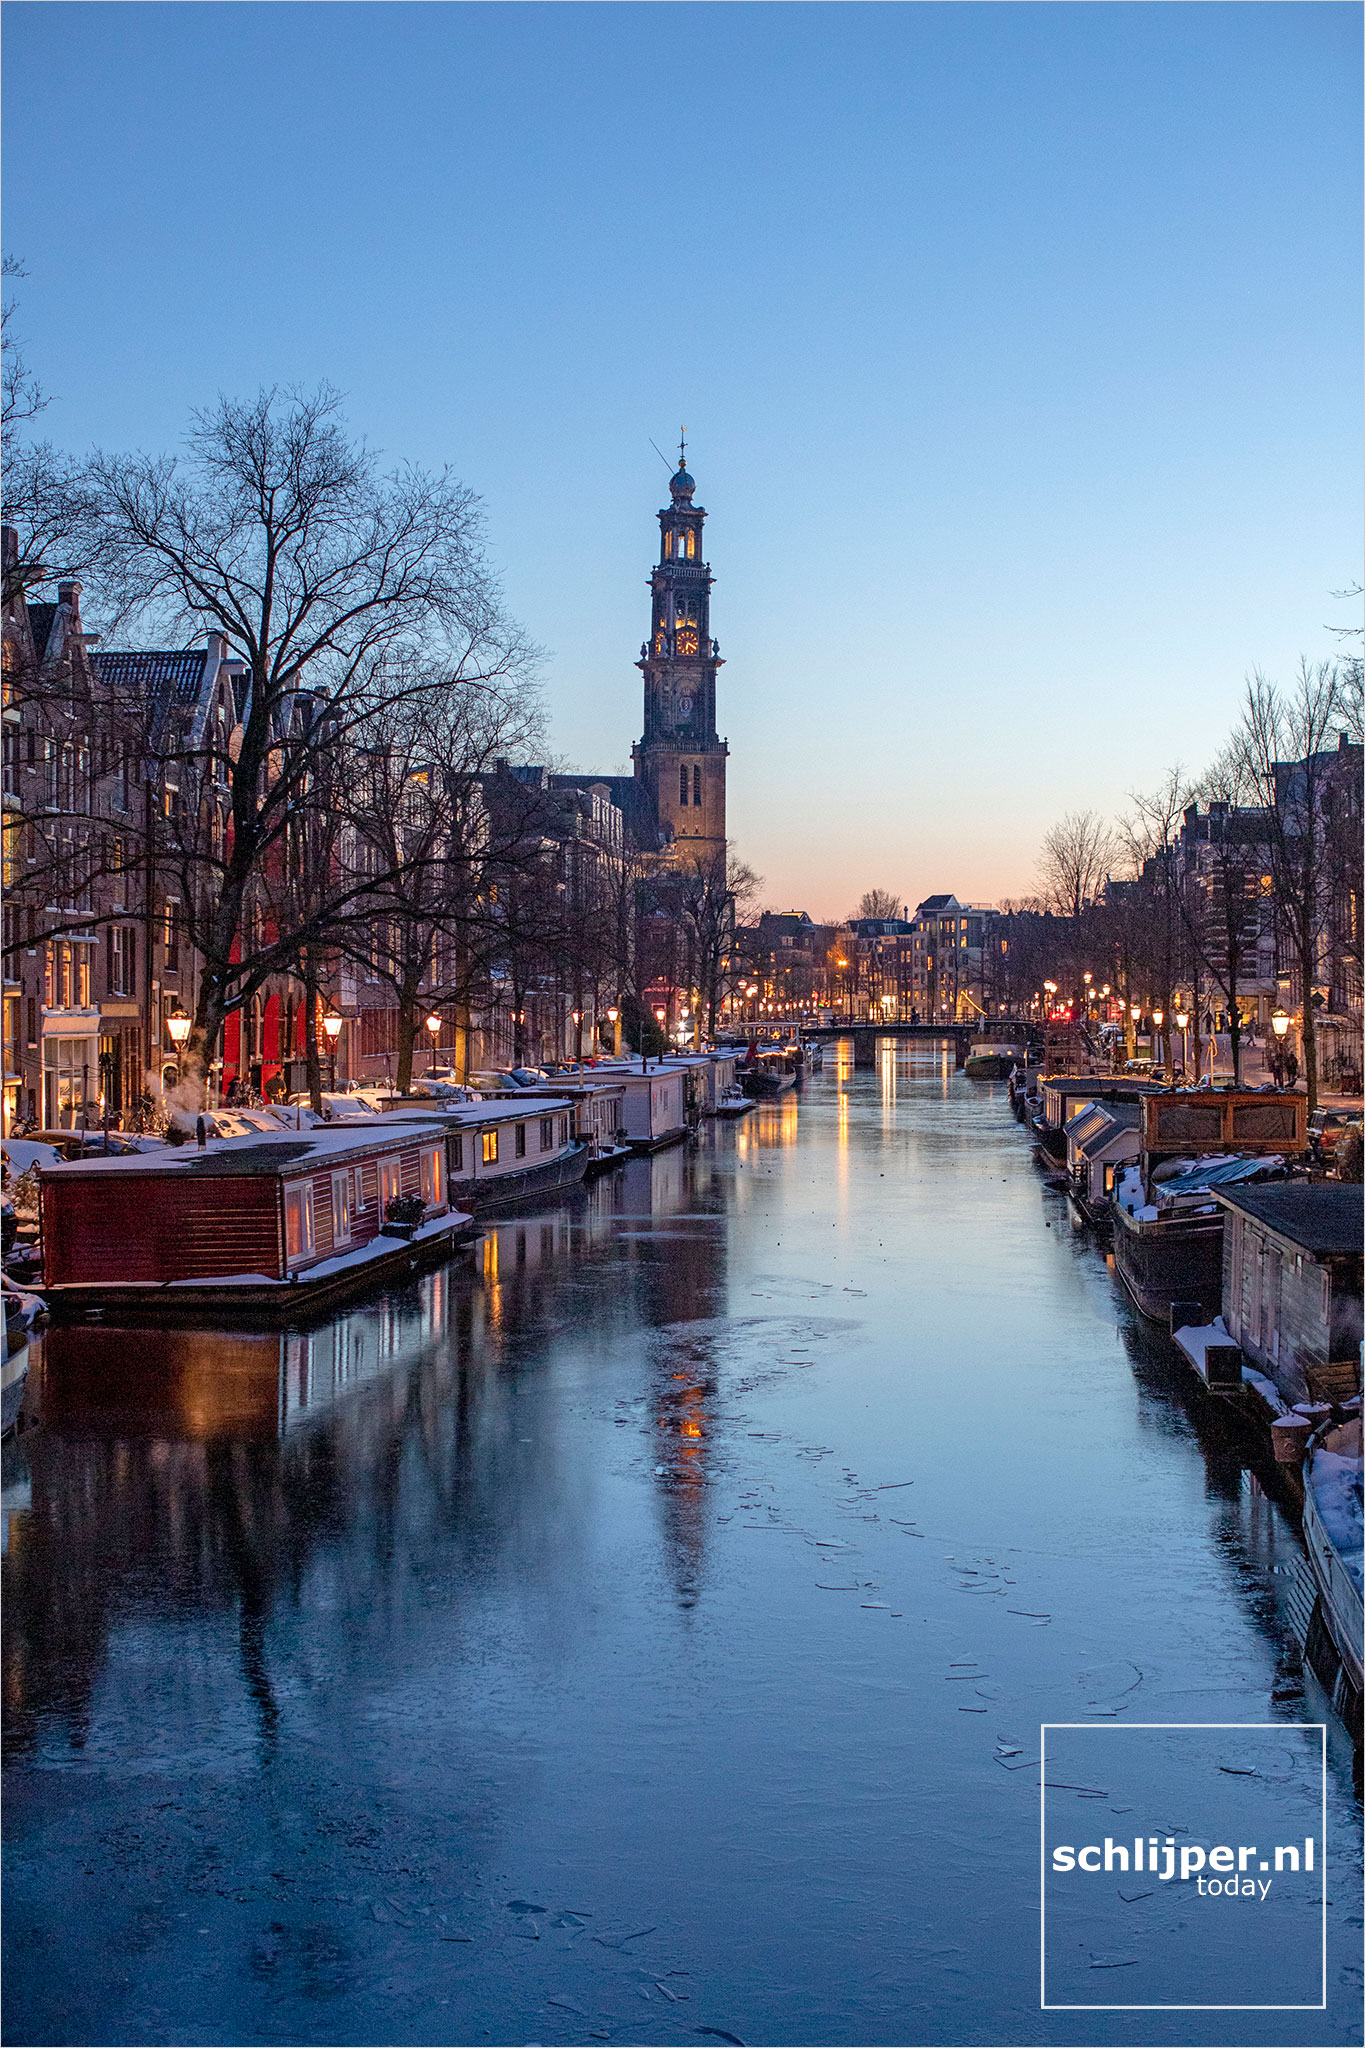 The Netherlands, Amsterdam, 11 februari 2021